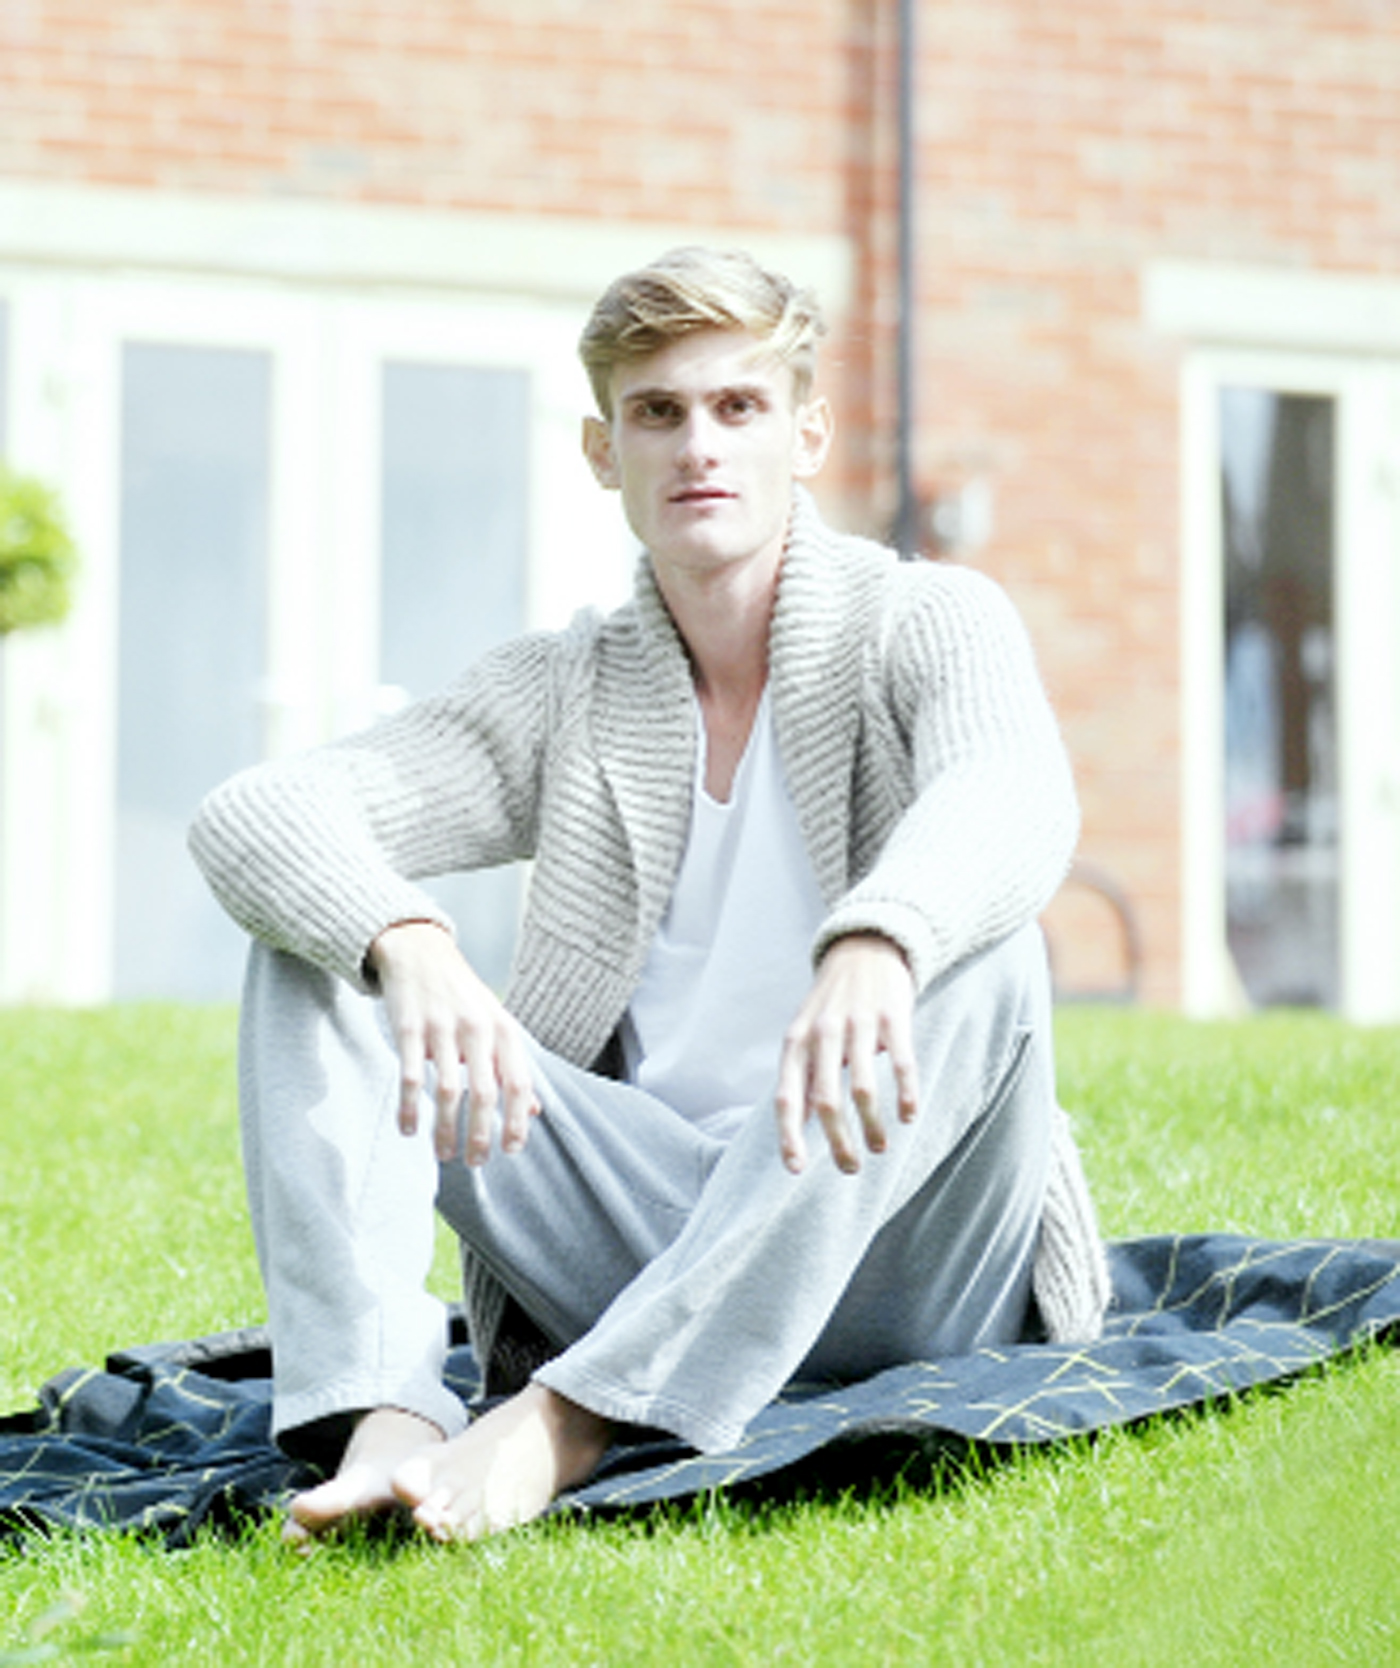 East Lancs cancer battler, 22, hailed as an inspiration